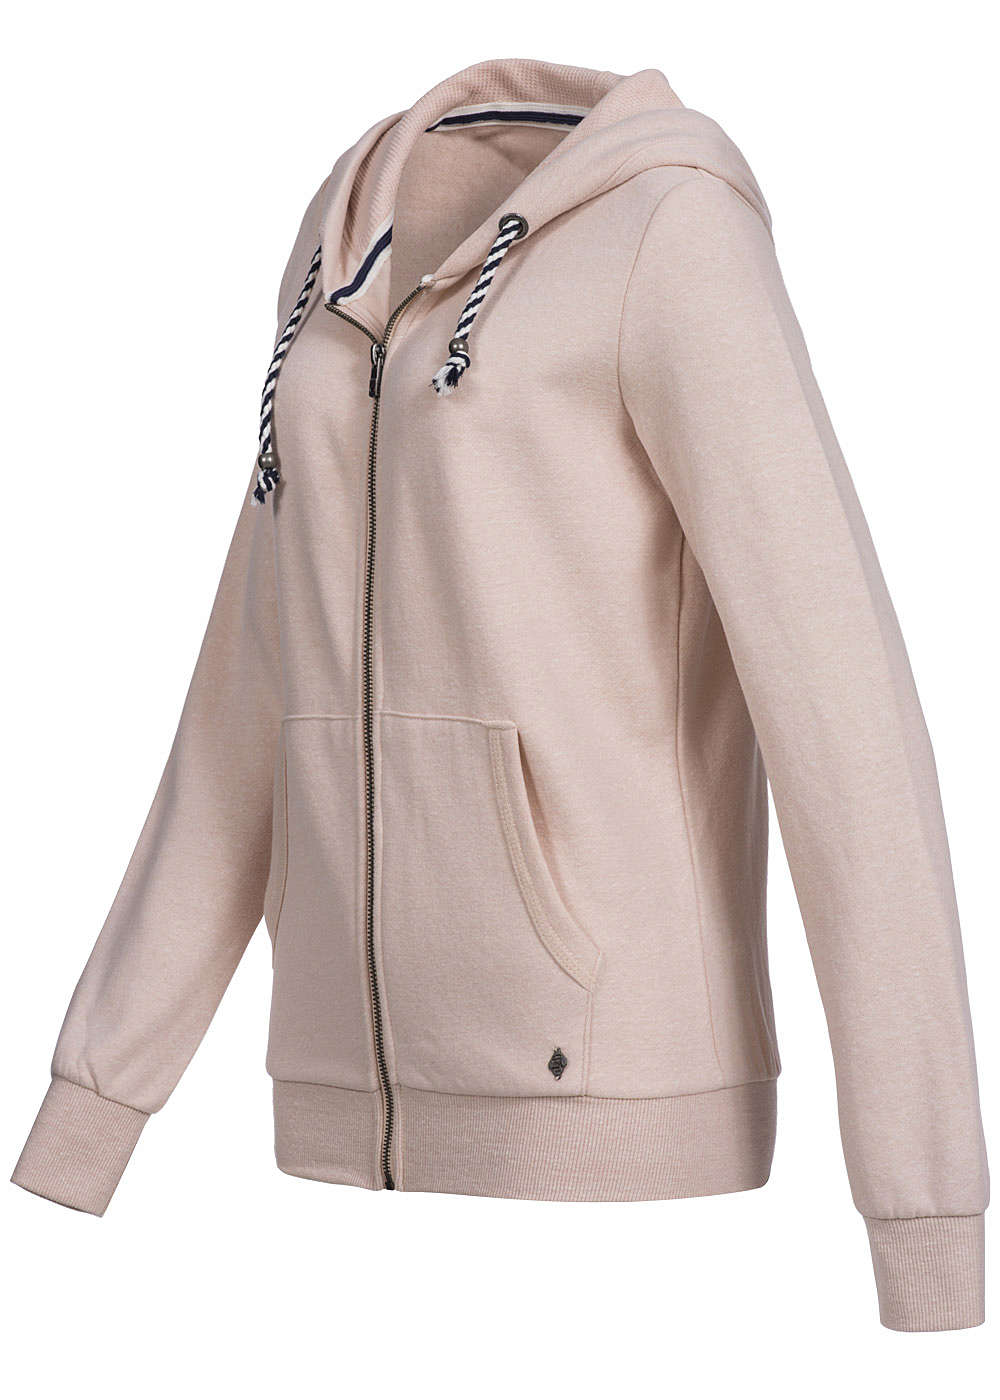 only damen zip hoodie kapuze 2 taschen kordelzug rosa smoke melange ebay. Black Bedroom Furniture Sets. Home Design Ideas